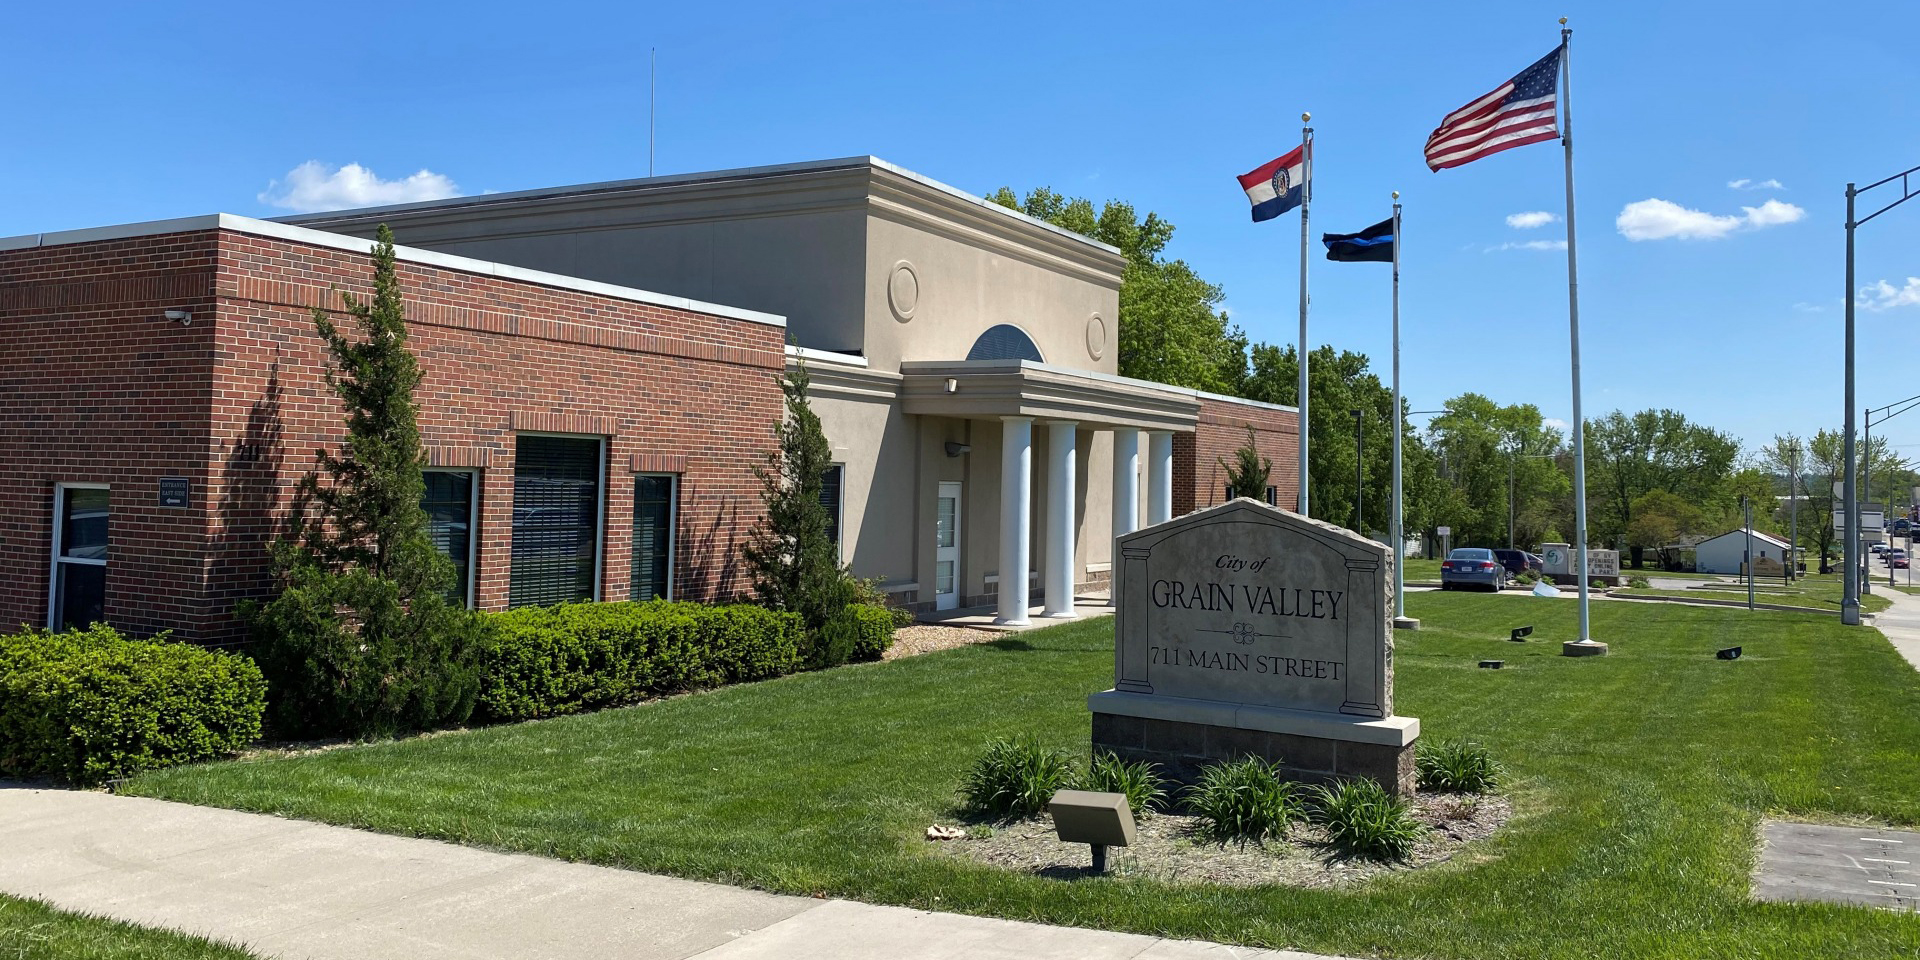 Increasing Communication Between the City of Grain Valley and Its Residents